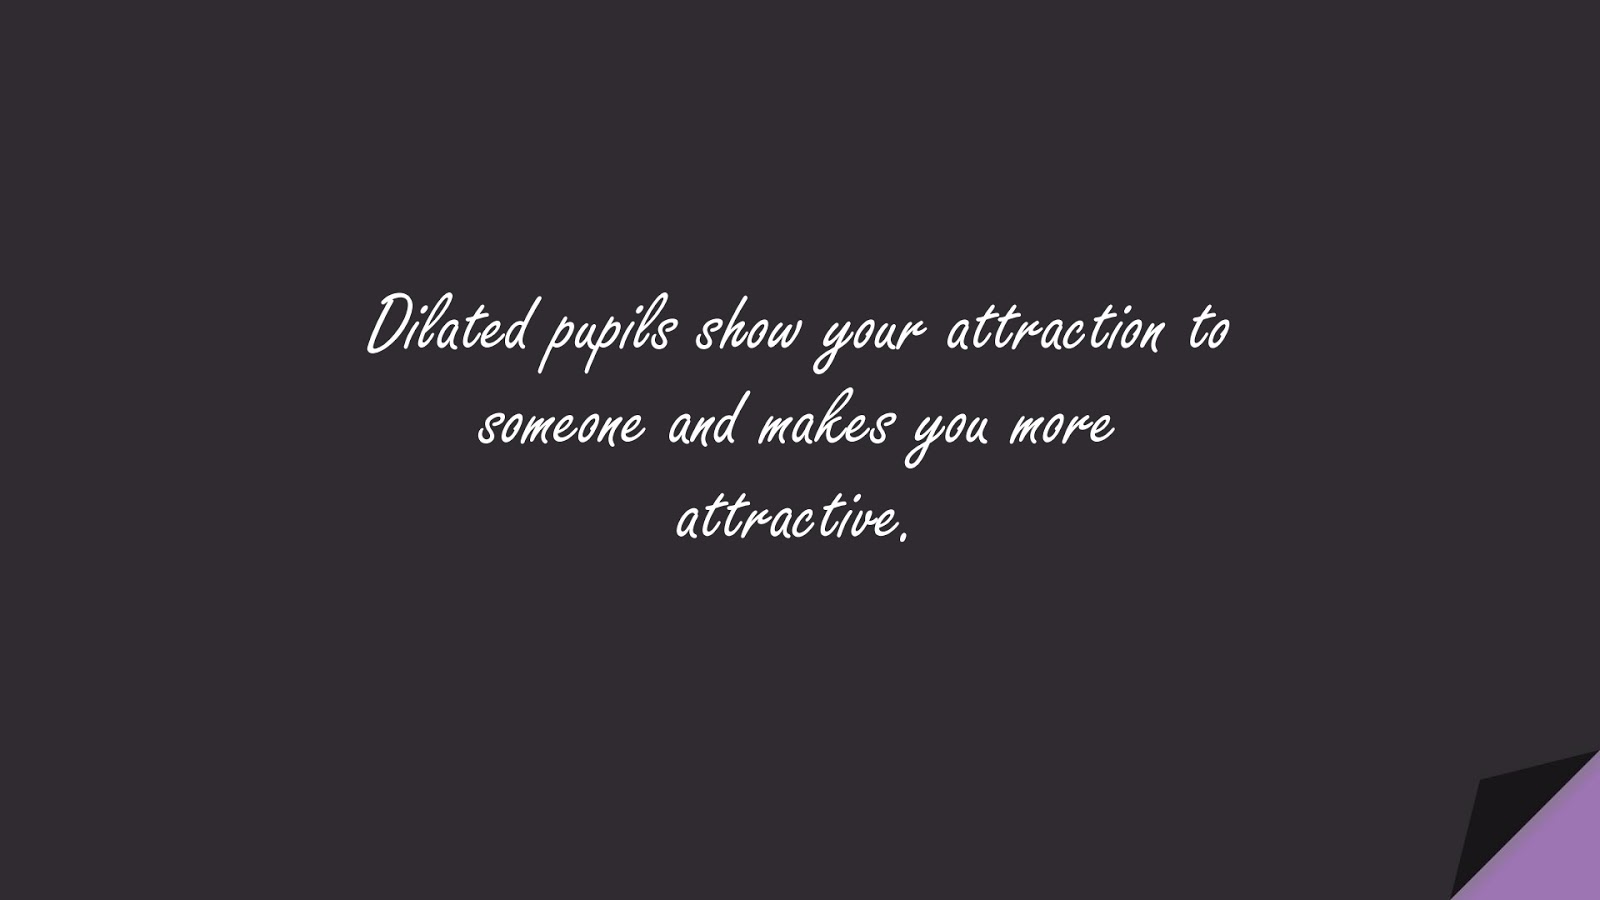 Dilated pupils show your attraction to someone and makes you more attractive.FALSE